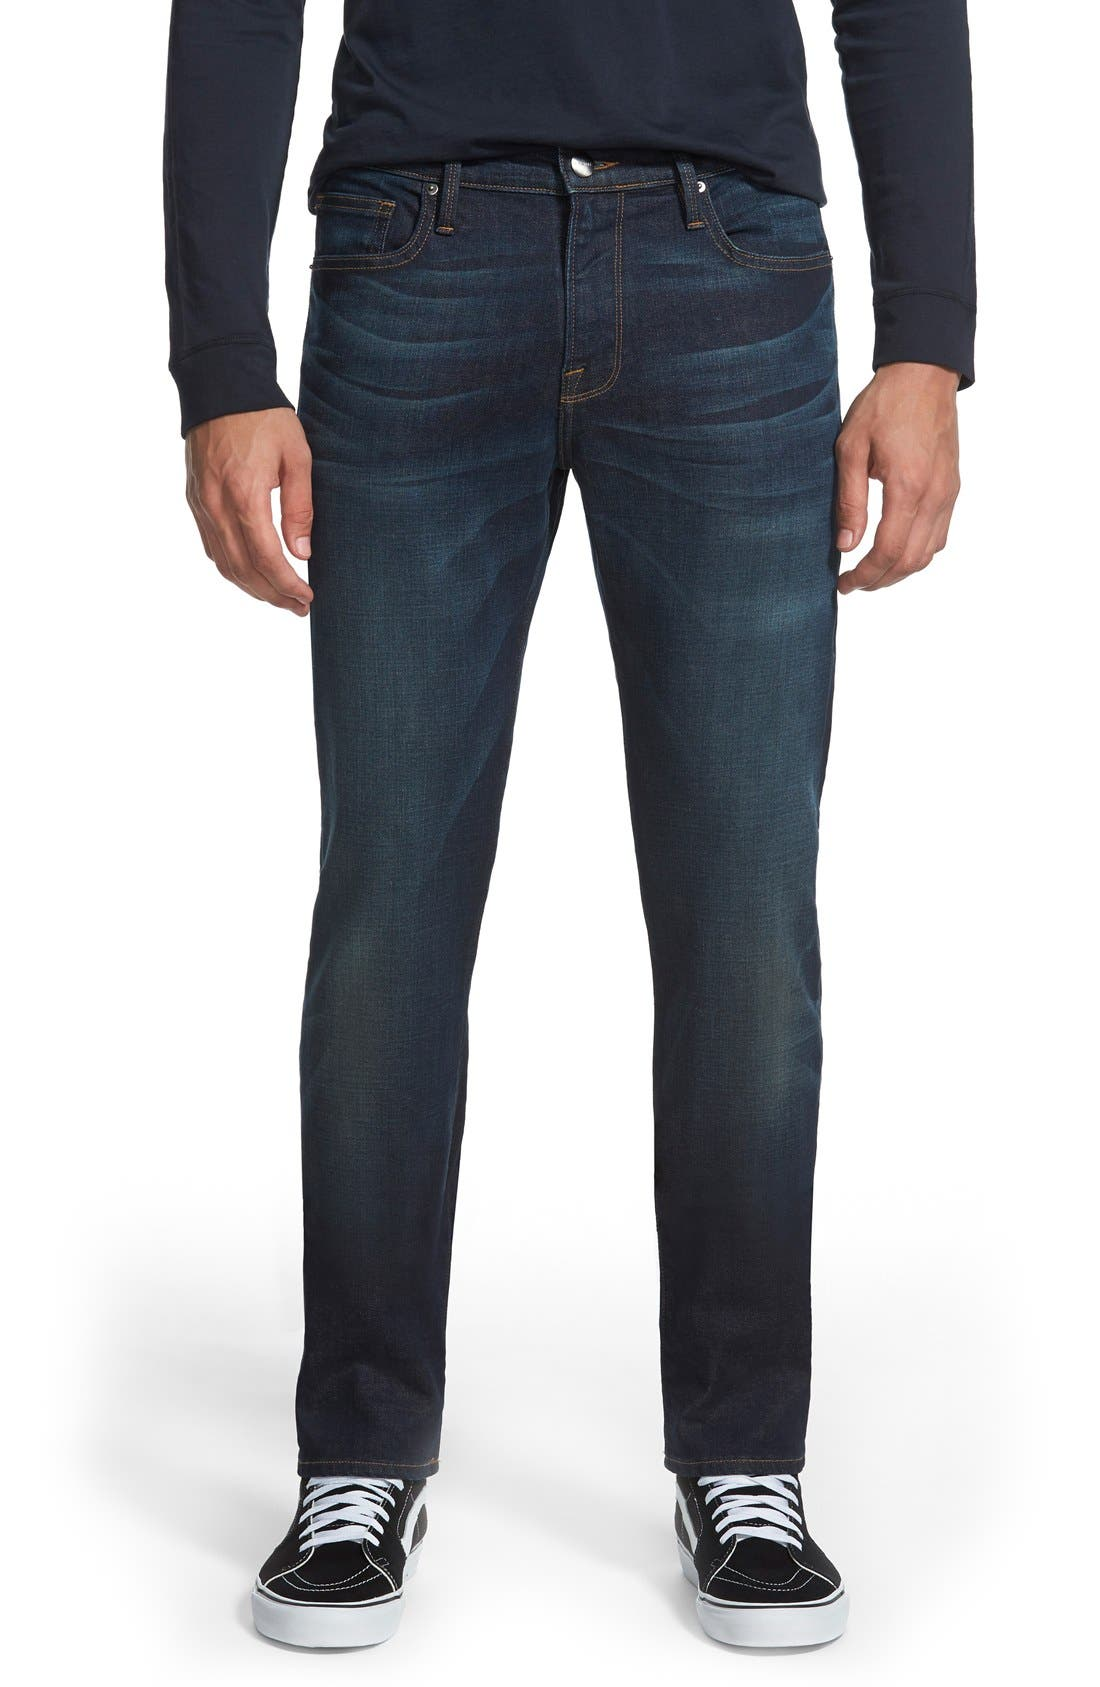 L'Homme Skinny Fit Jeans,                         Main,                         color,